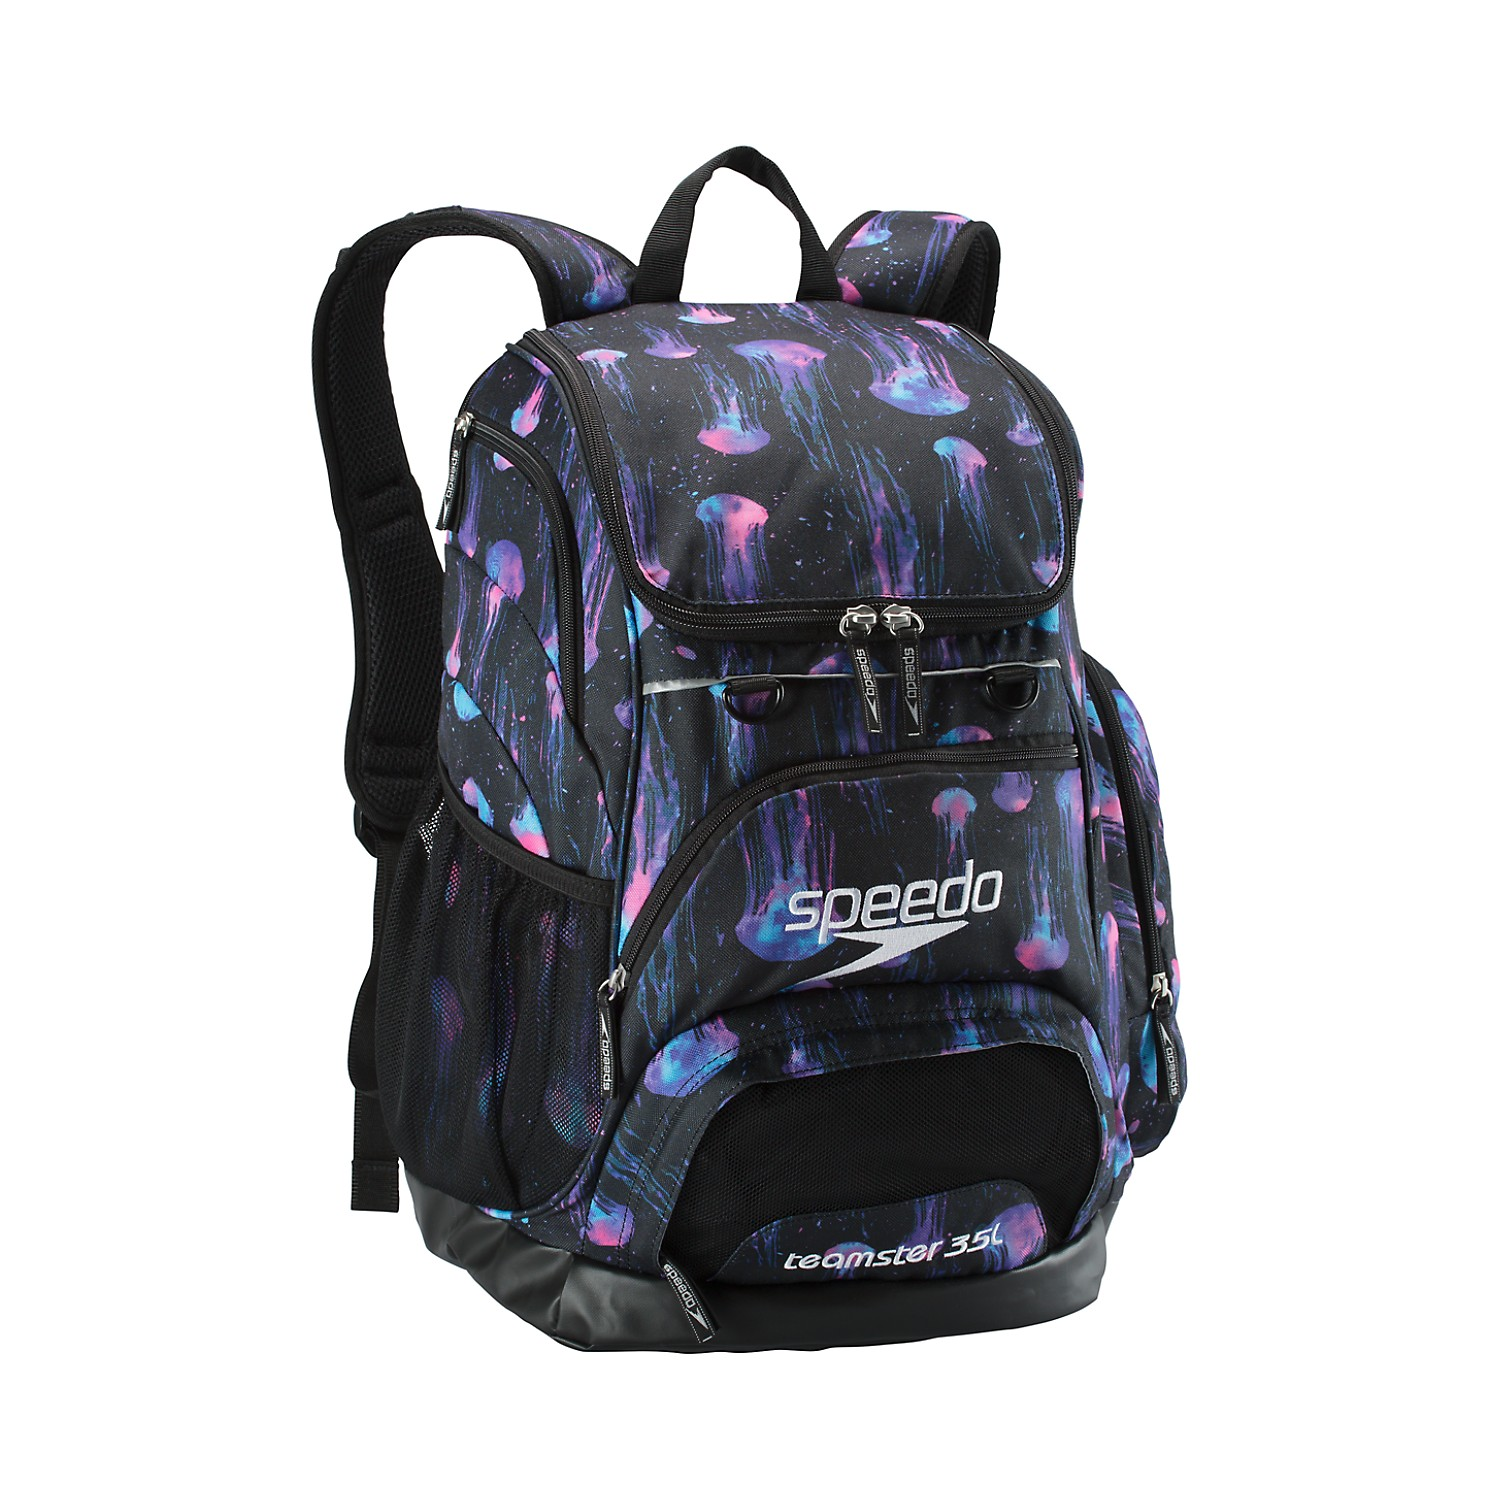 Speedo Printed Teamster Backpack